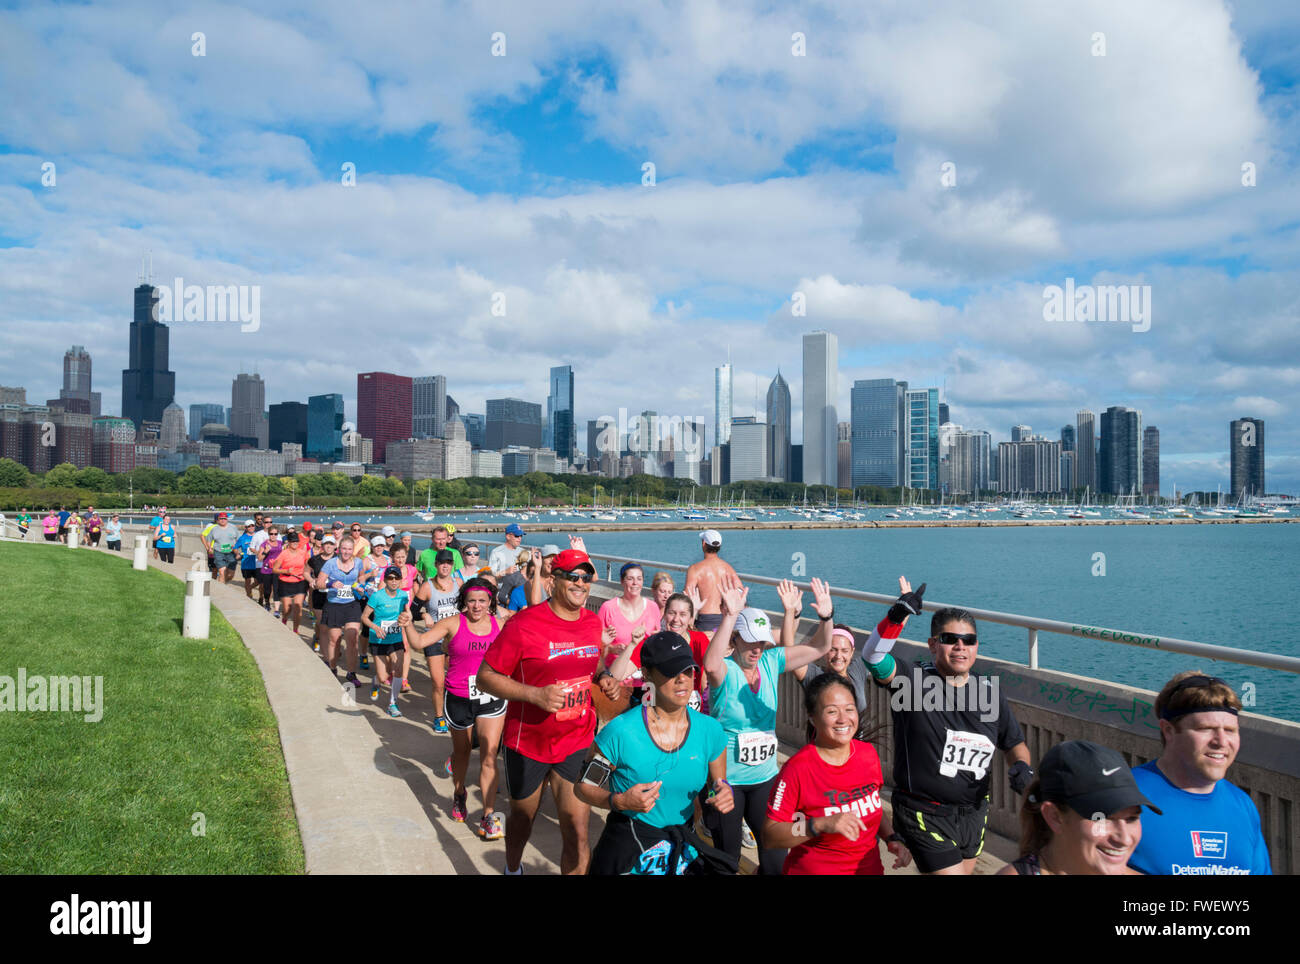 The Chicago Marathon along the lakefront, Downtown Chicago, Illinois, United States of America, North America - Stock Image